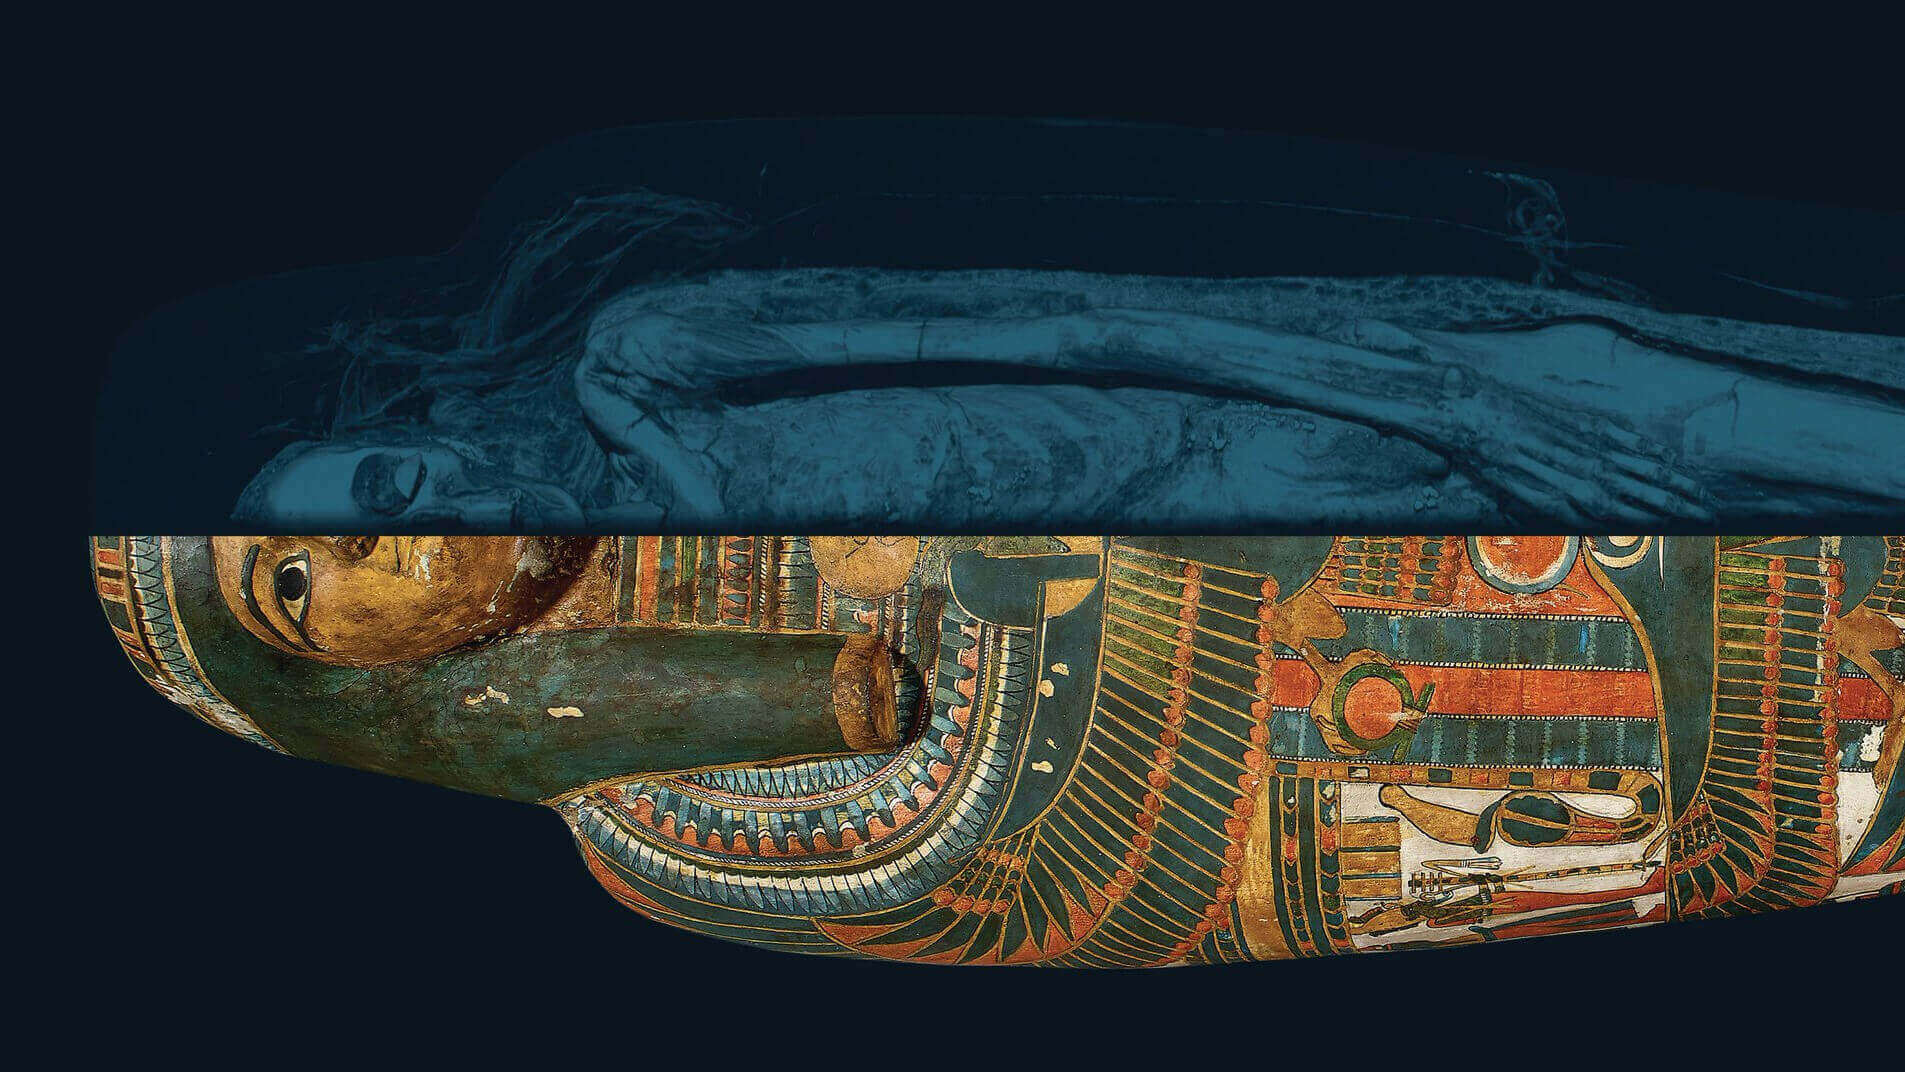 3D Scanning & 3D Printing Unwraps Ancient Mummy Secrets | All3DP